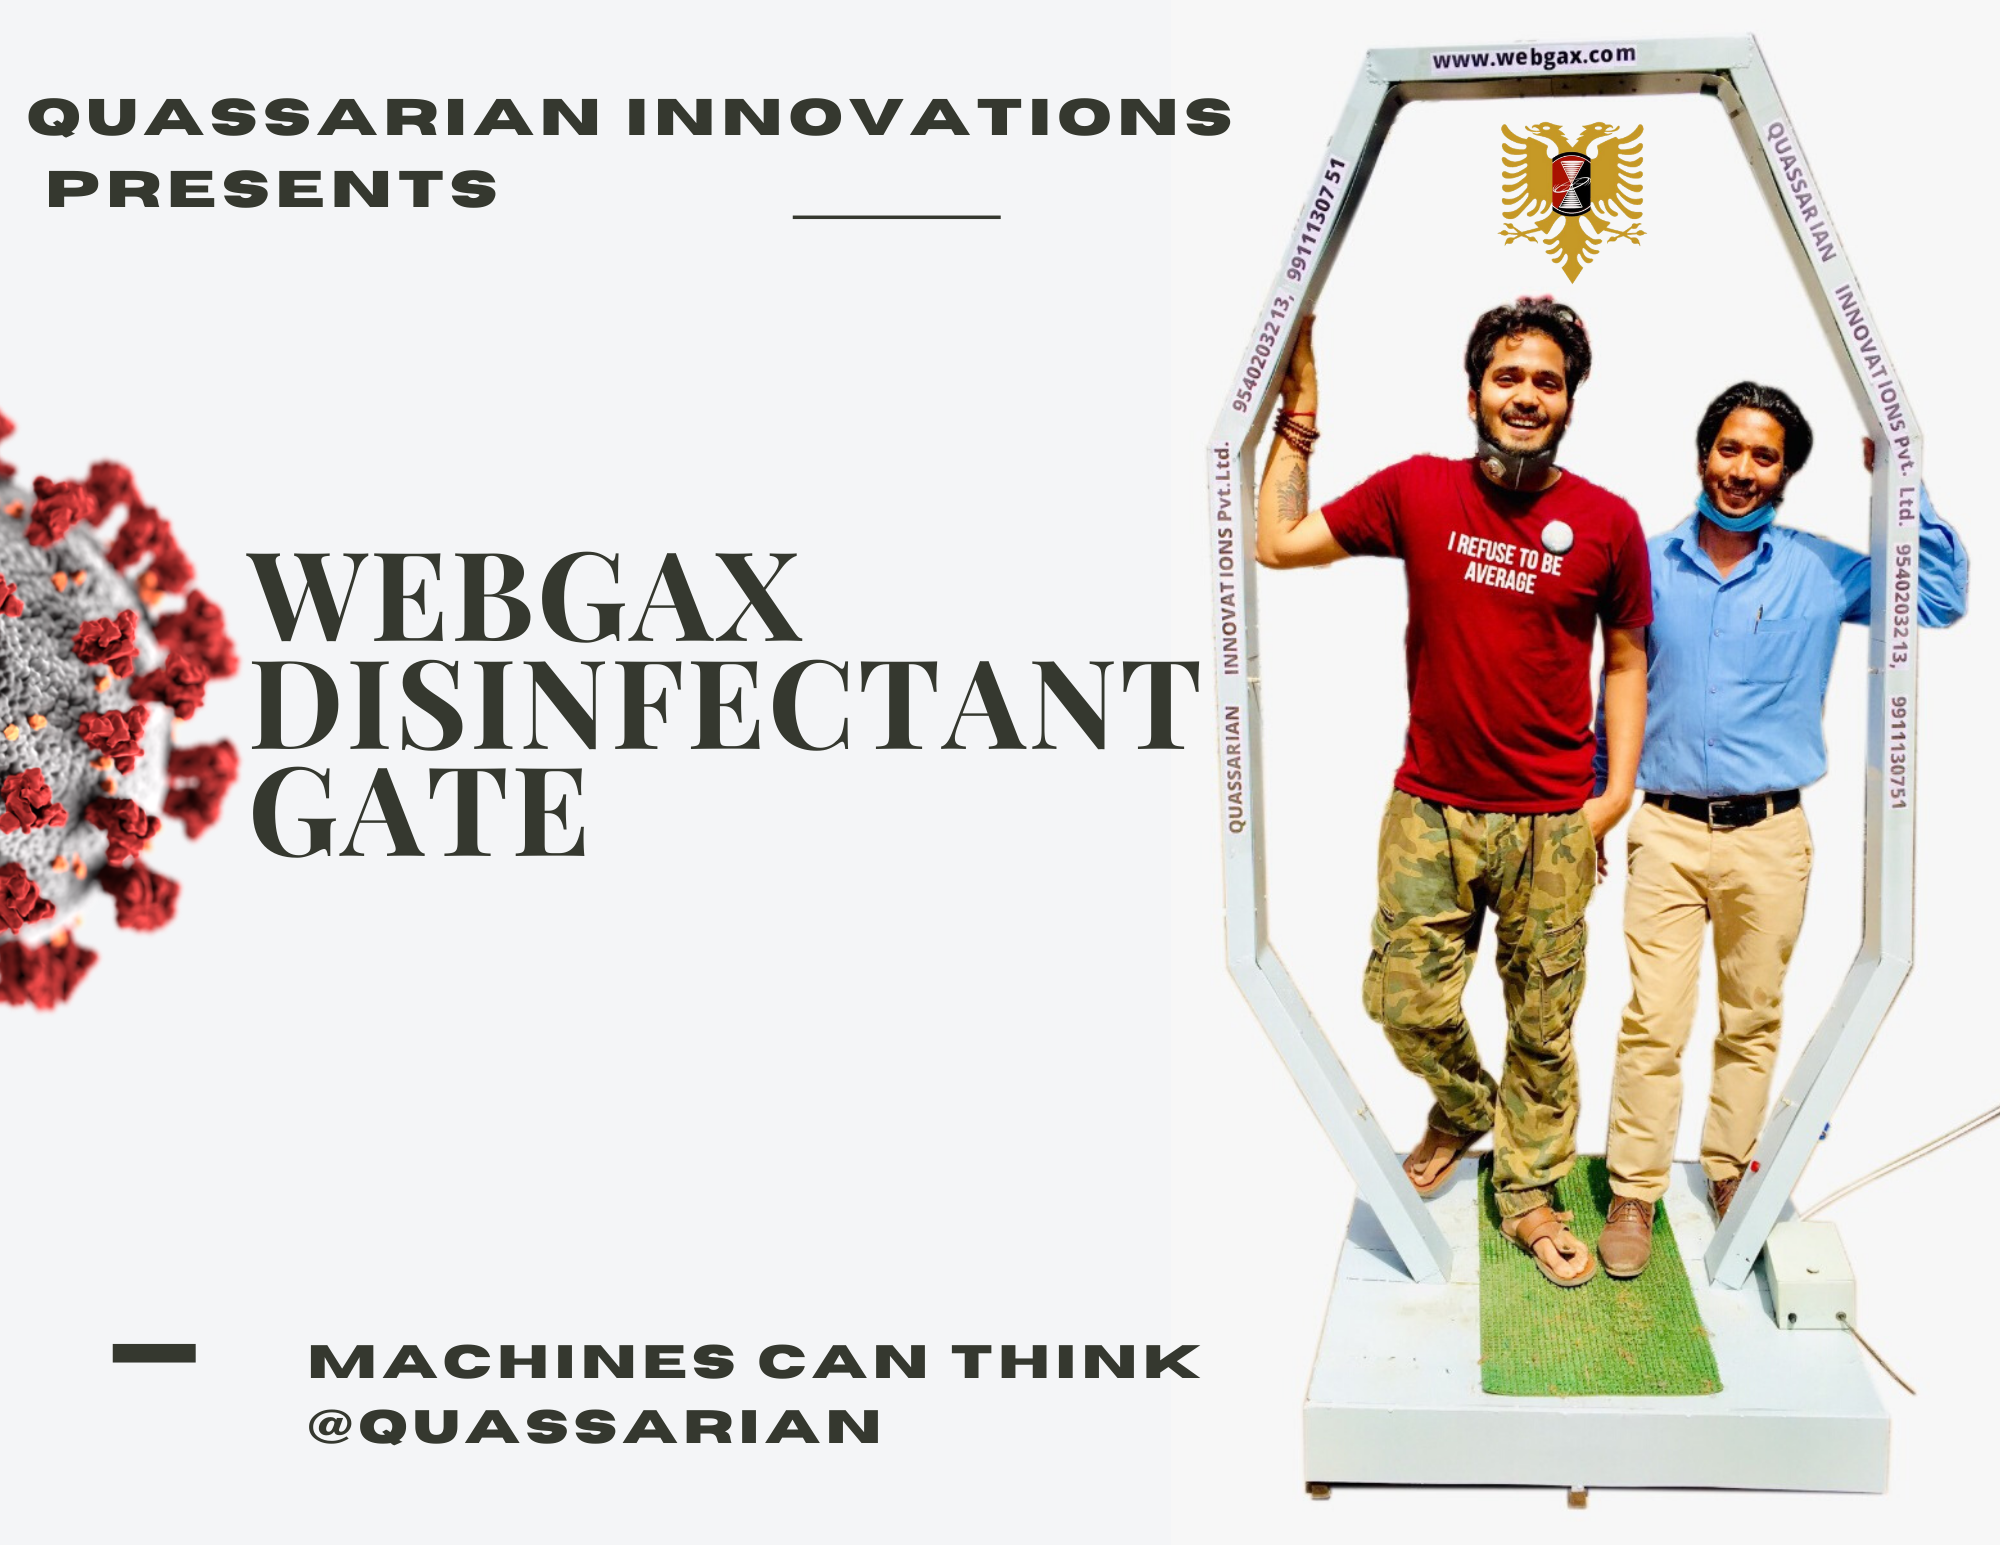 Webgax Disinfectant Gate